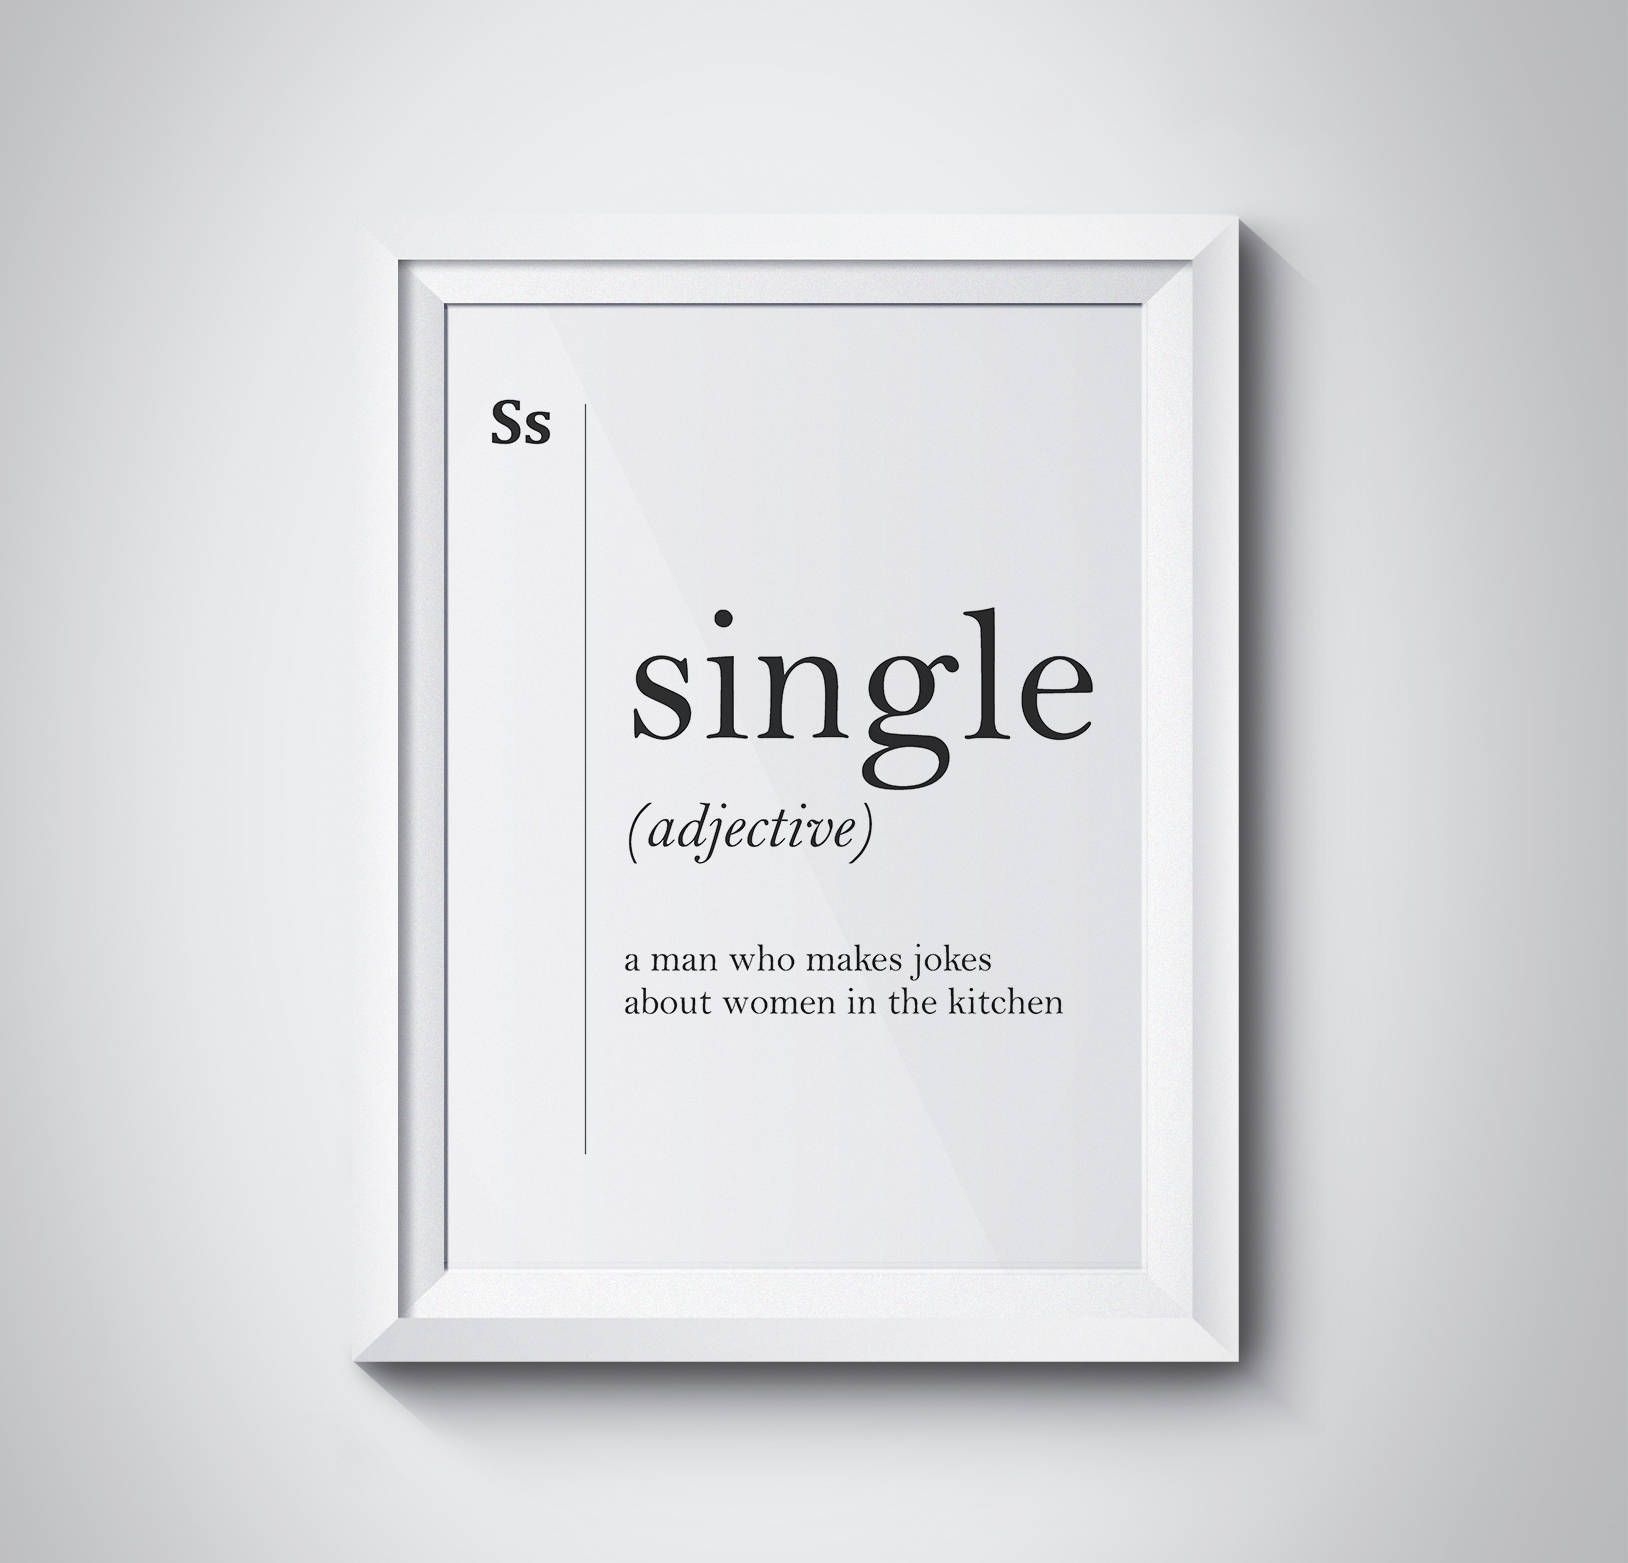 Single Definition, Gift for Him, Dictionary Art Print, Office Decor, Minimalist Poster, Single Man Gift, Funny Definition Print, #HQDEF077 by HQstudio on Etsy